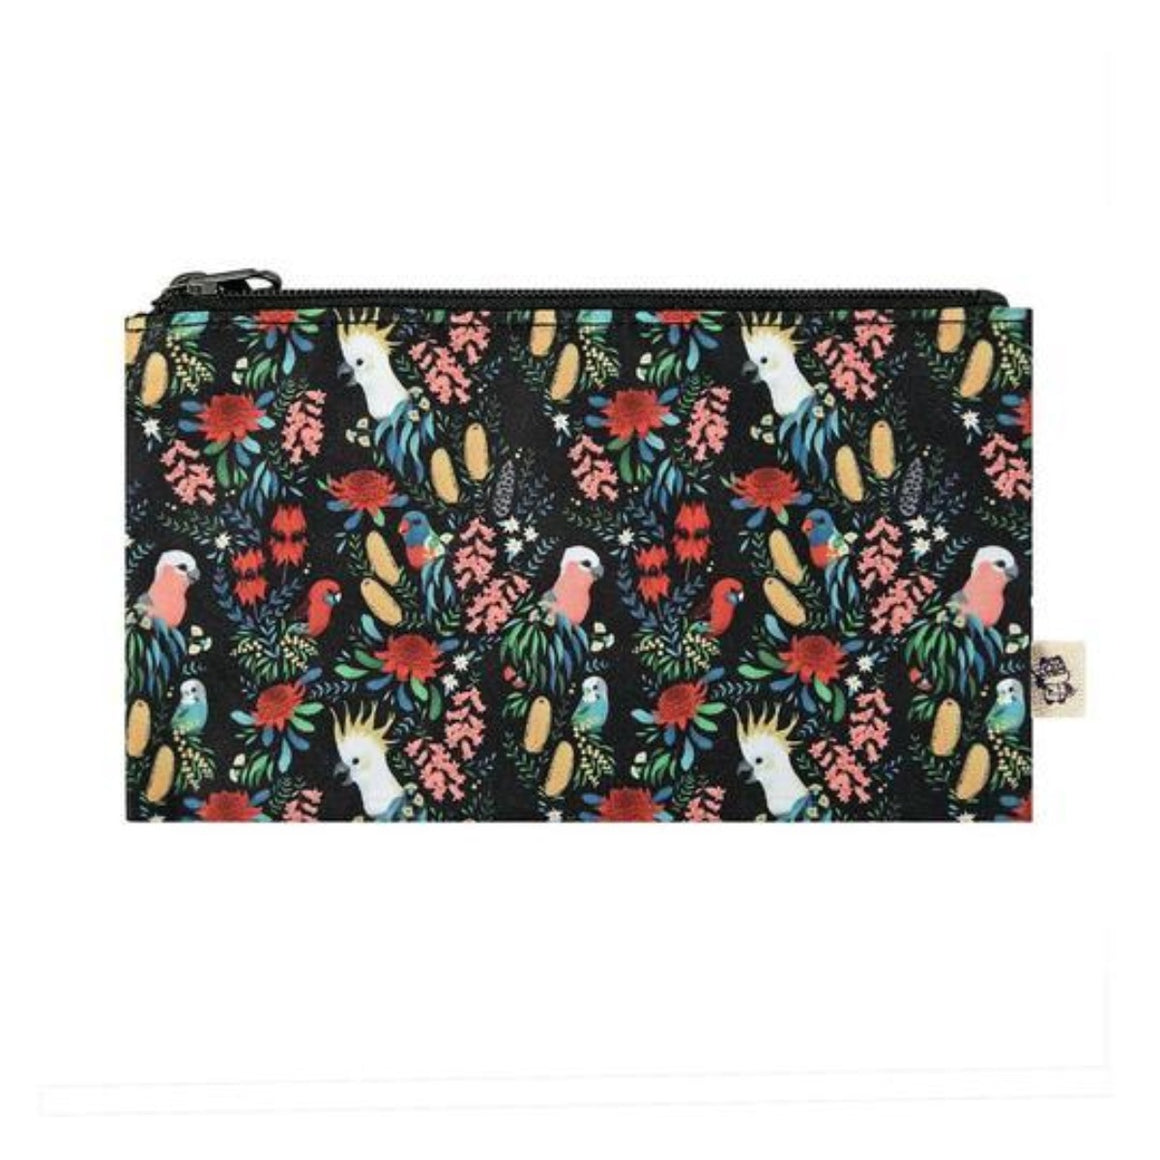 Black background pencil case featuring Australian florals such as wattle and banksia's as well as Australian birds such as a rainbow lorikeet, cockatoo and rosellas